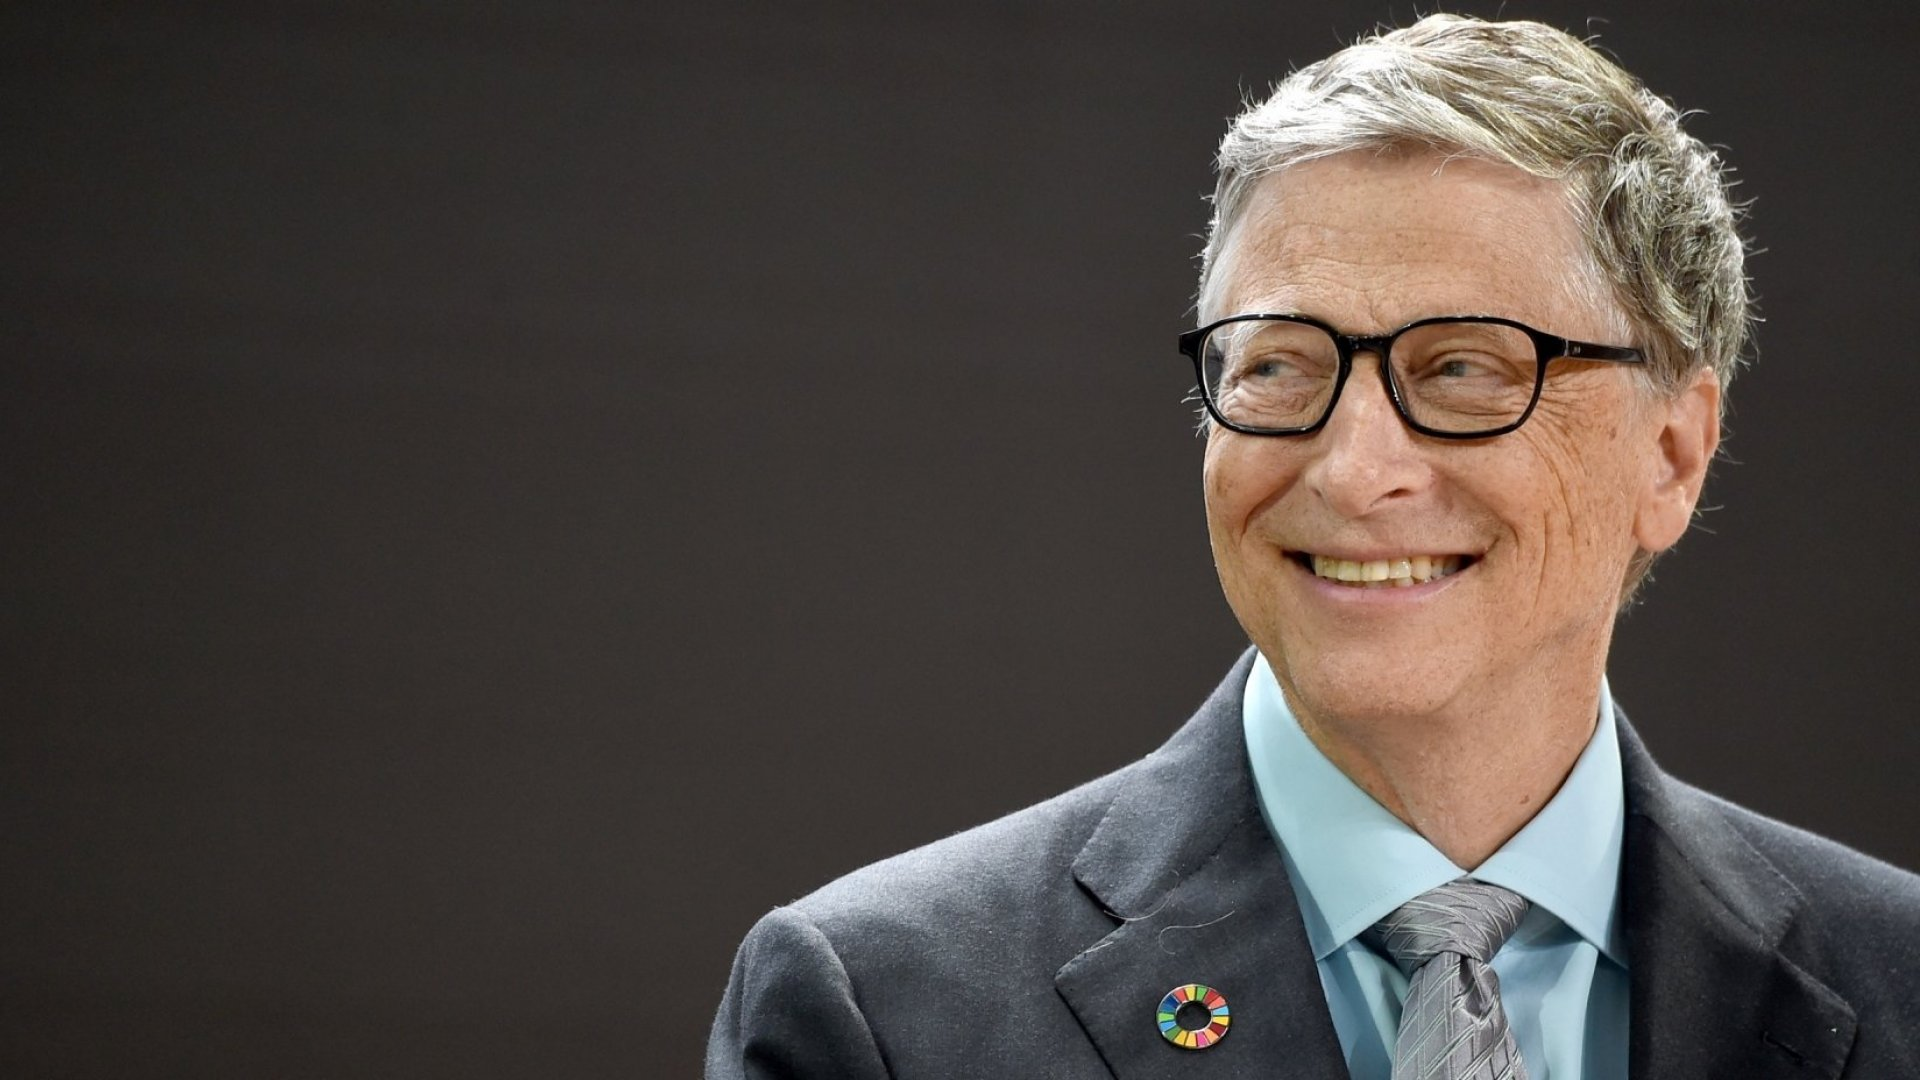 What I Learned From Bill Gates About Speaking Like a Boss (Even When You're Not)